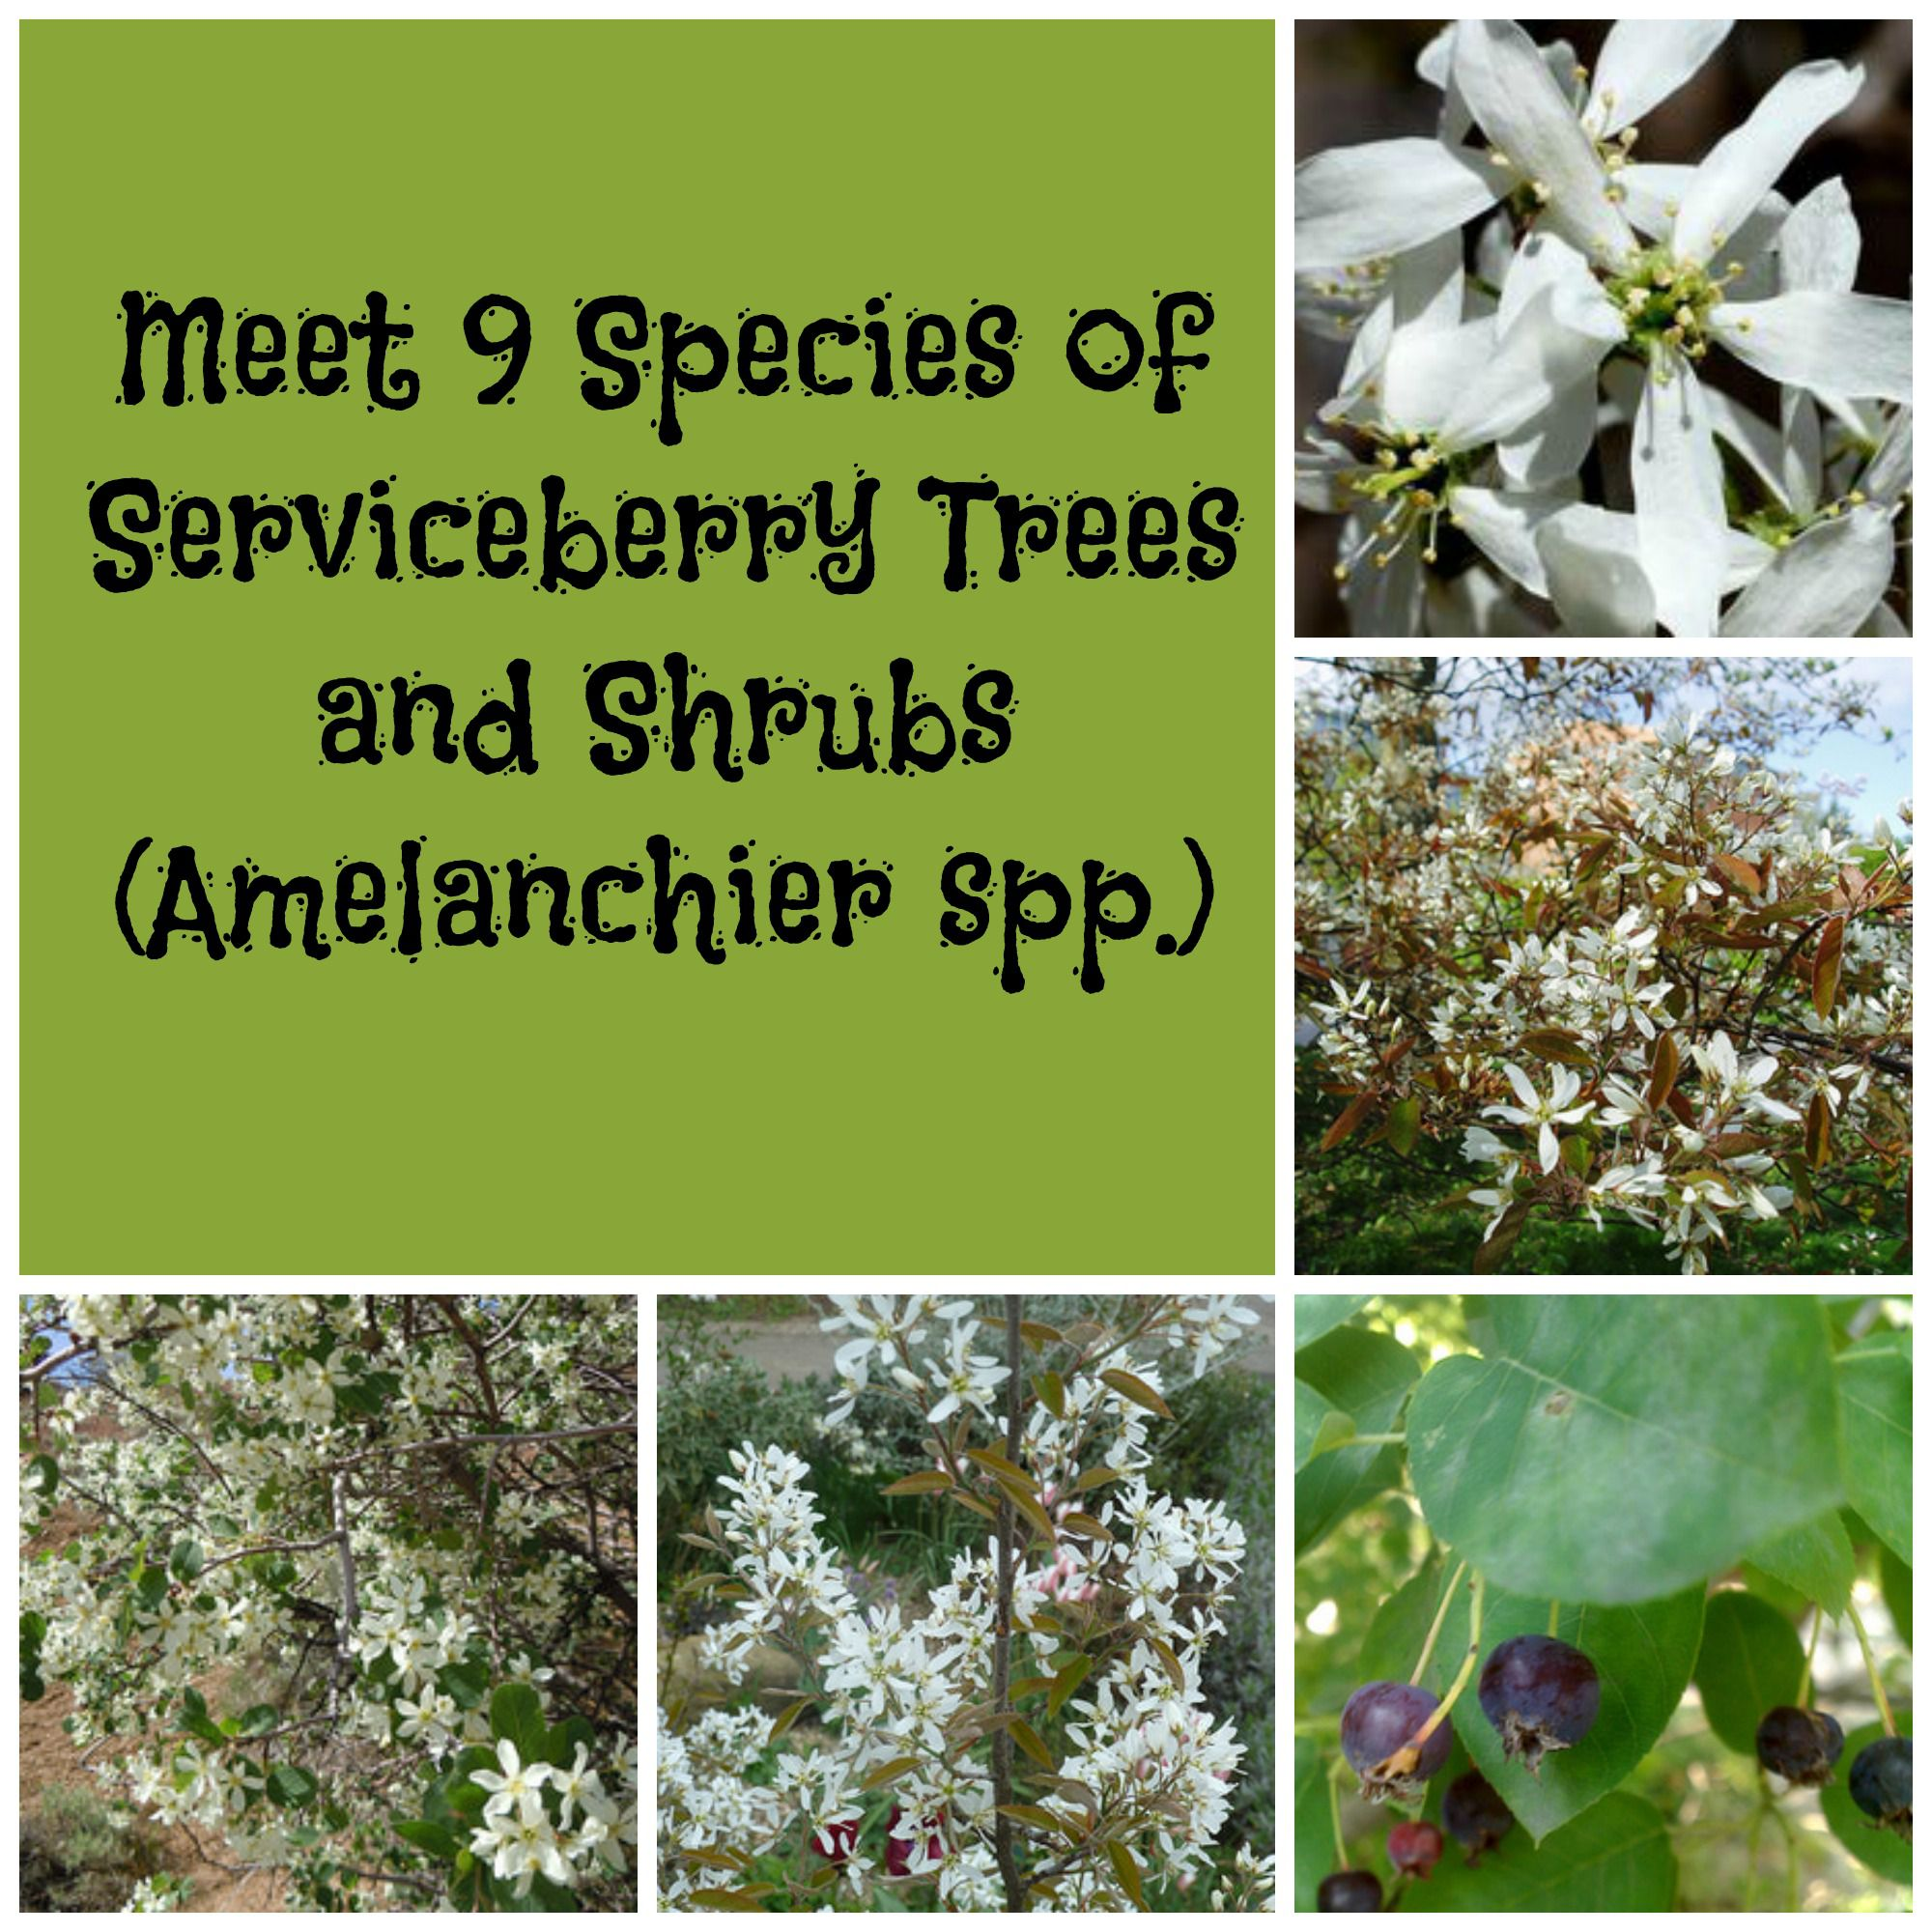 meet 9 species of serviceberry trees and shrubs